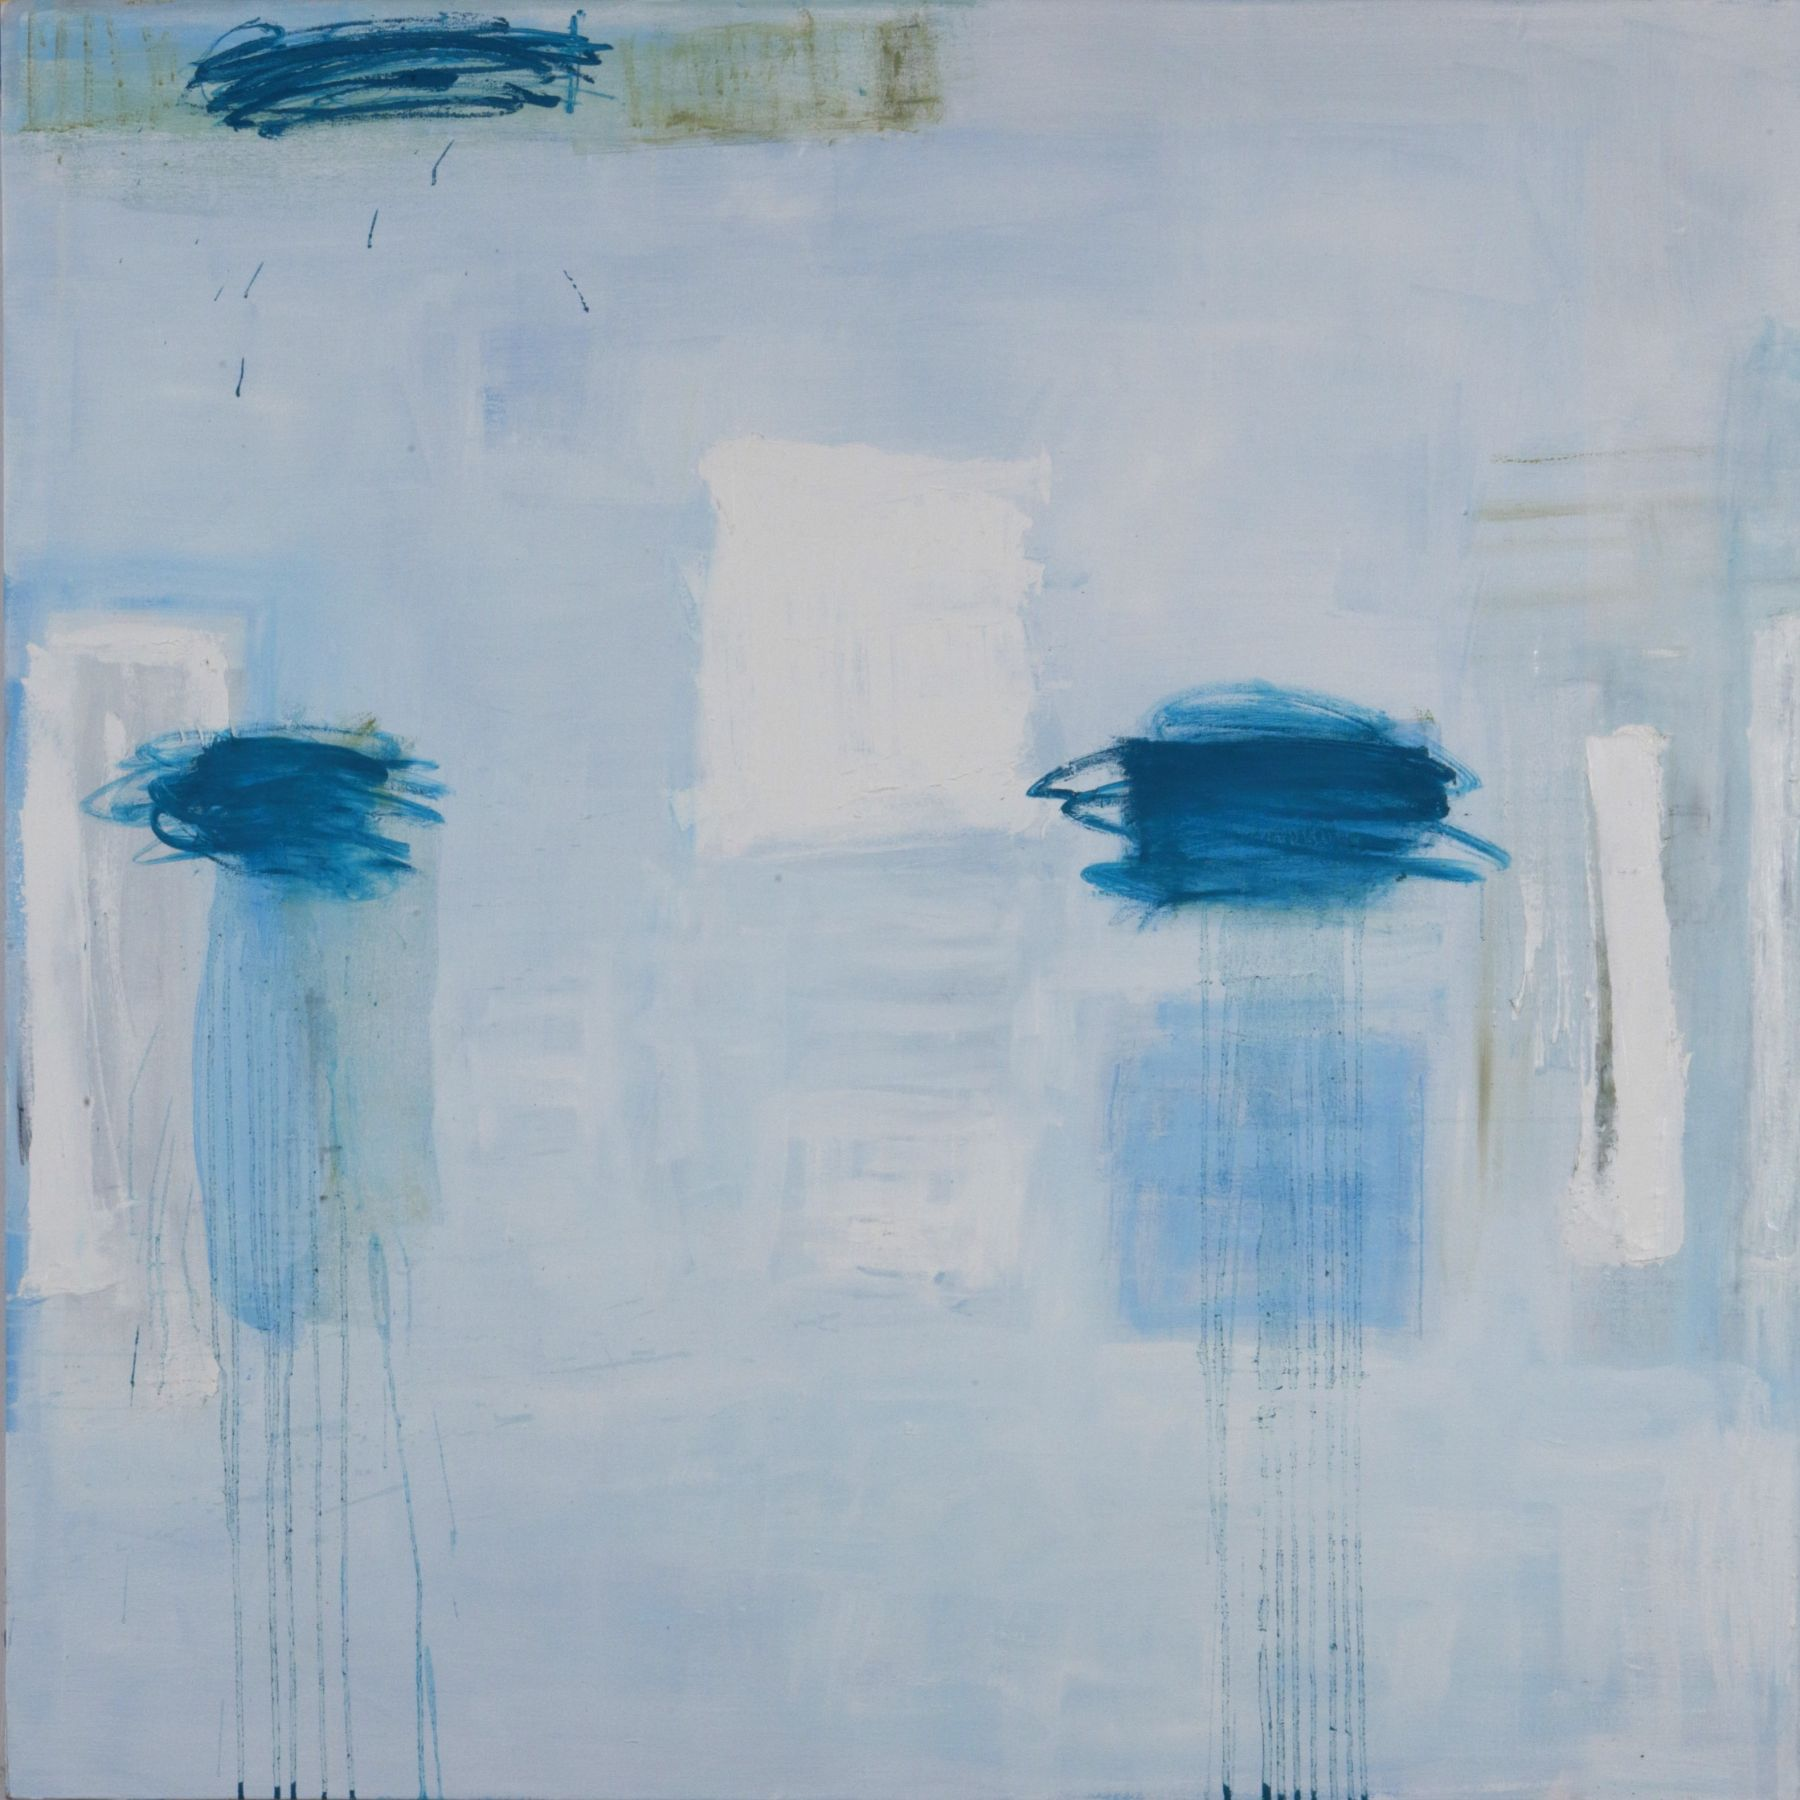 Katherine Parker, All that Follows, 2018, Oil on canvas, 60 x 60 inches. Abstract work with light blue, white and darker blue organic and gestural shapes.Katherine Parker is known for her large vividly painted canvases which are characterized by layers of stumbled and abraded oil paint.